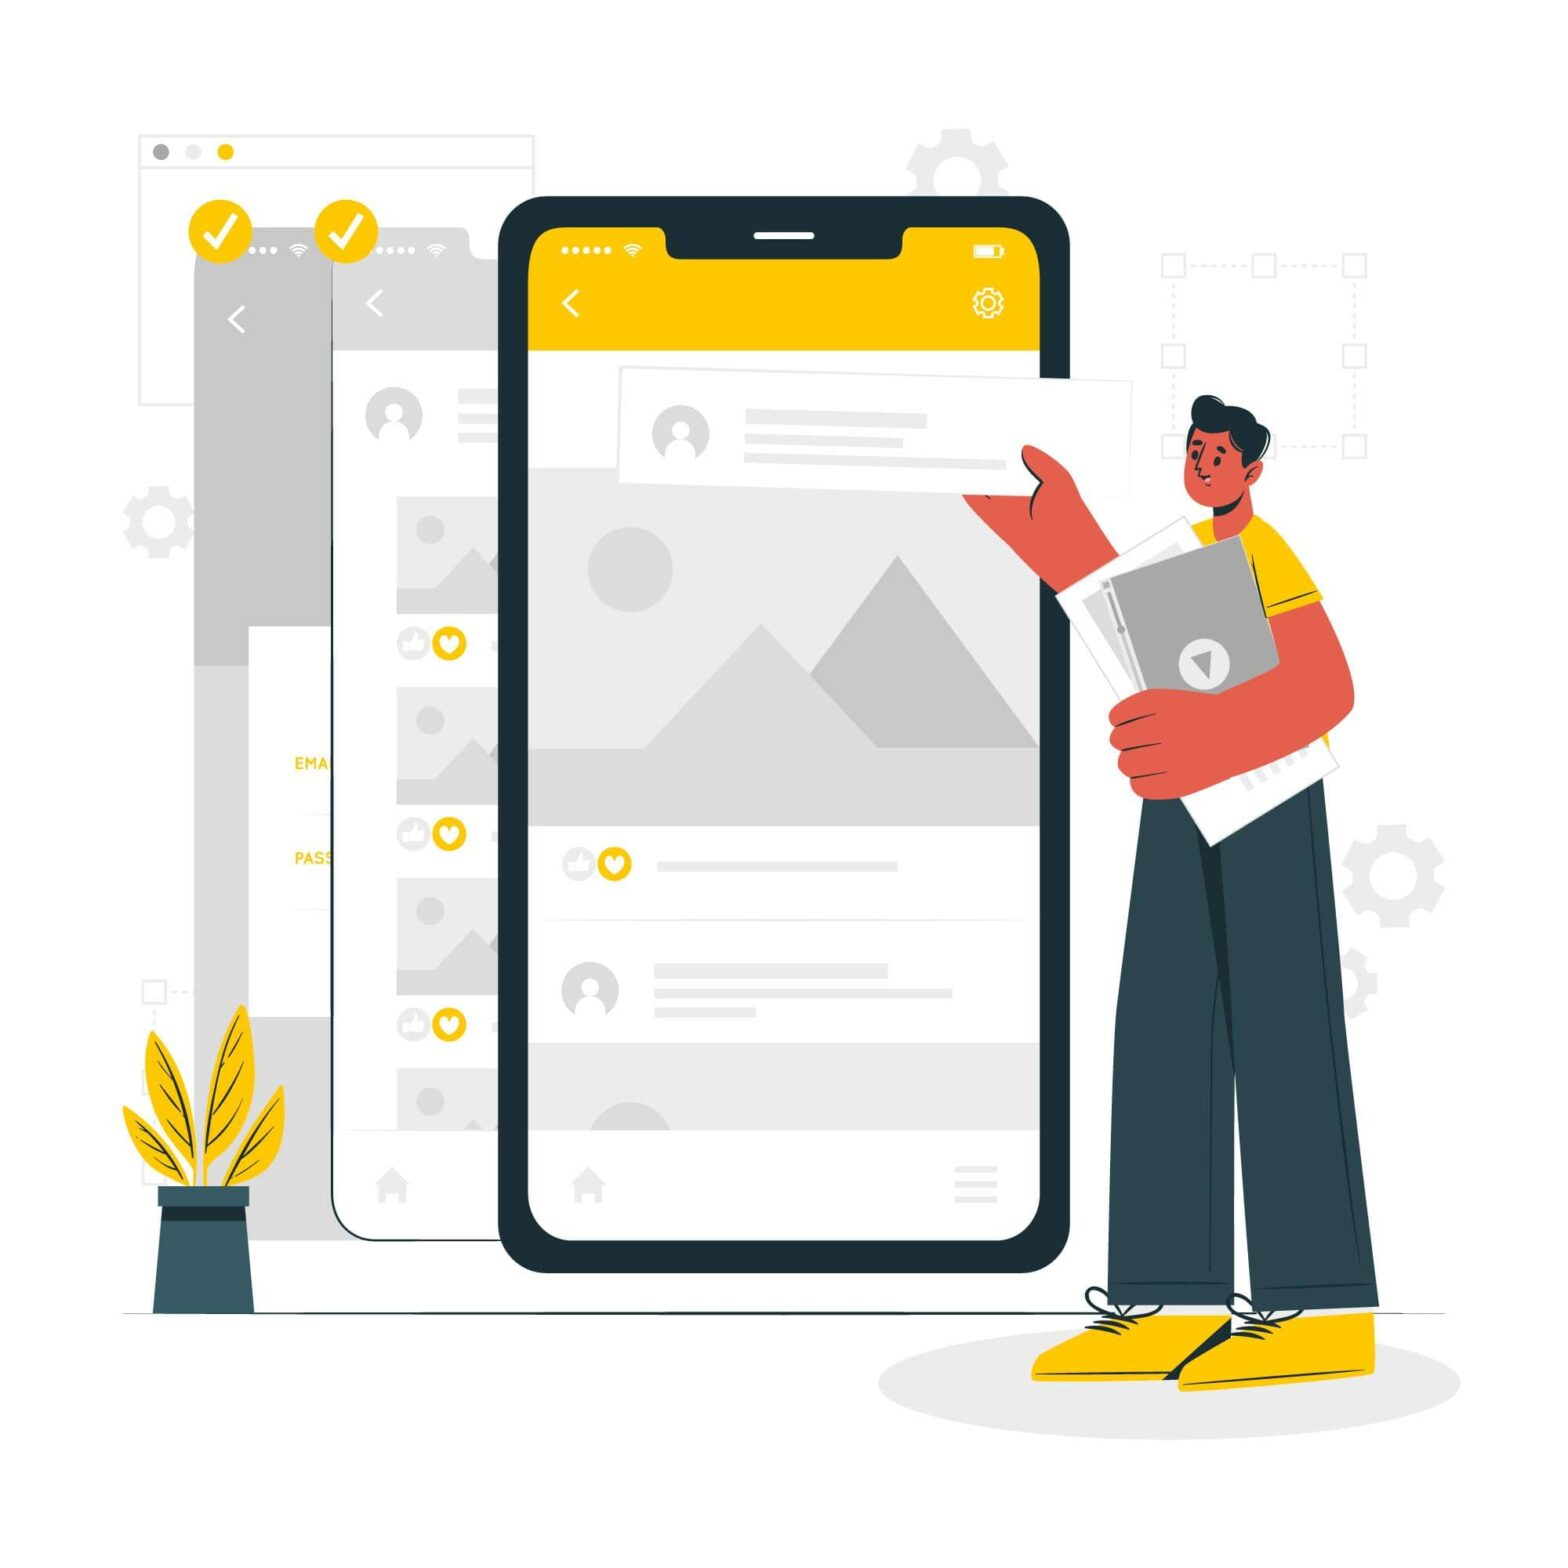 Best practices to improve Digital Experience